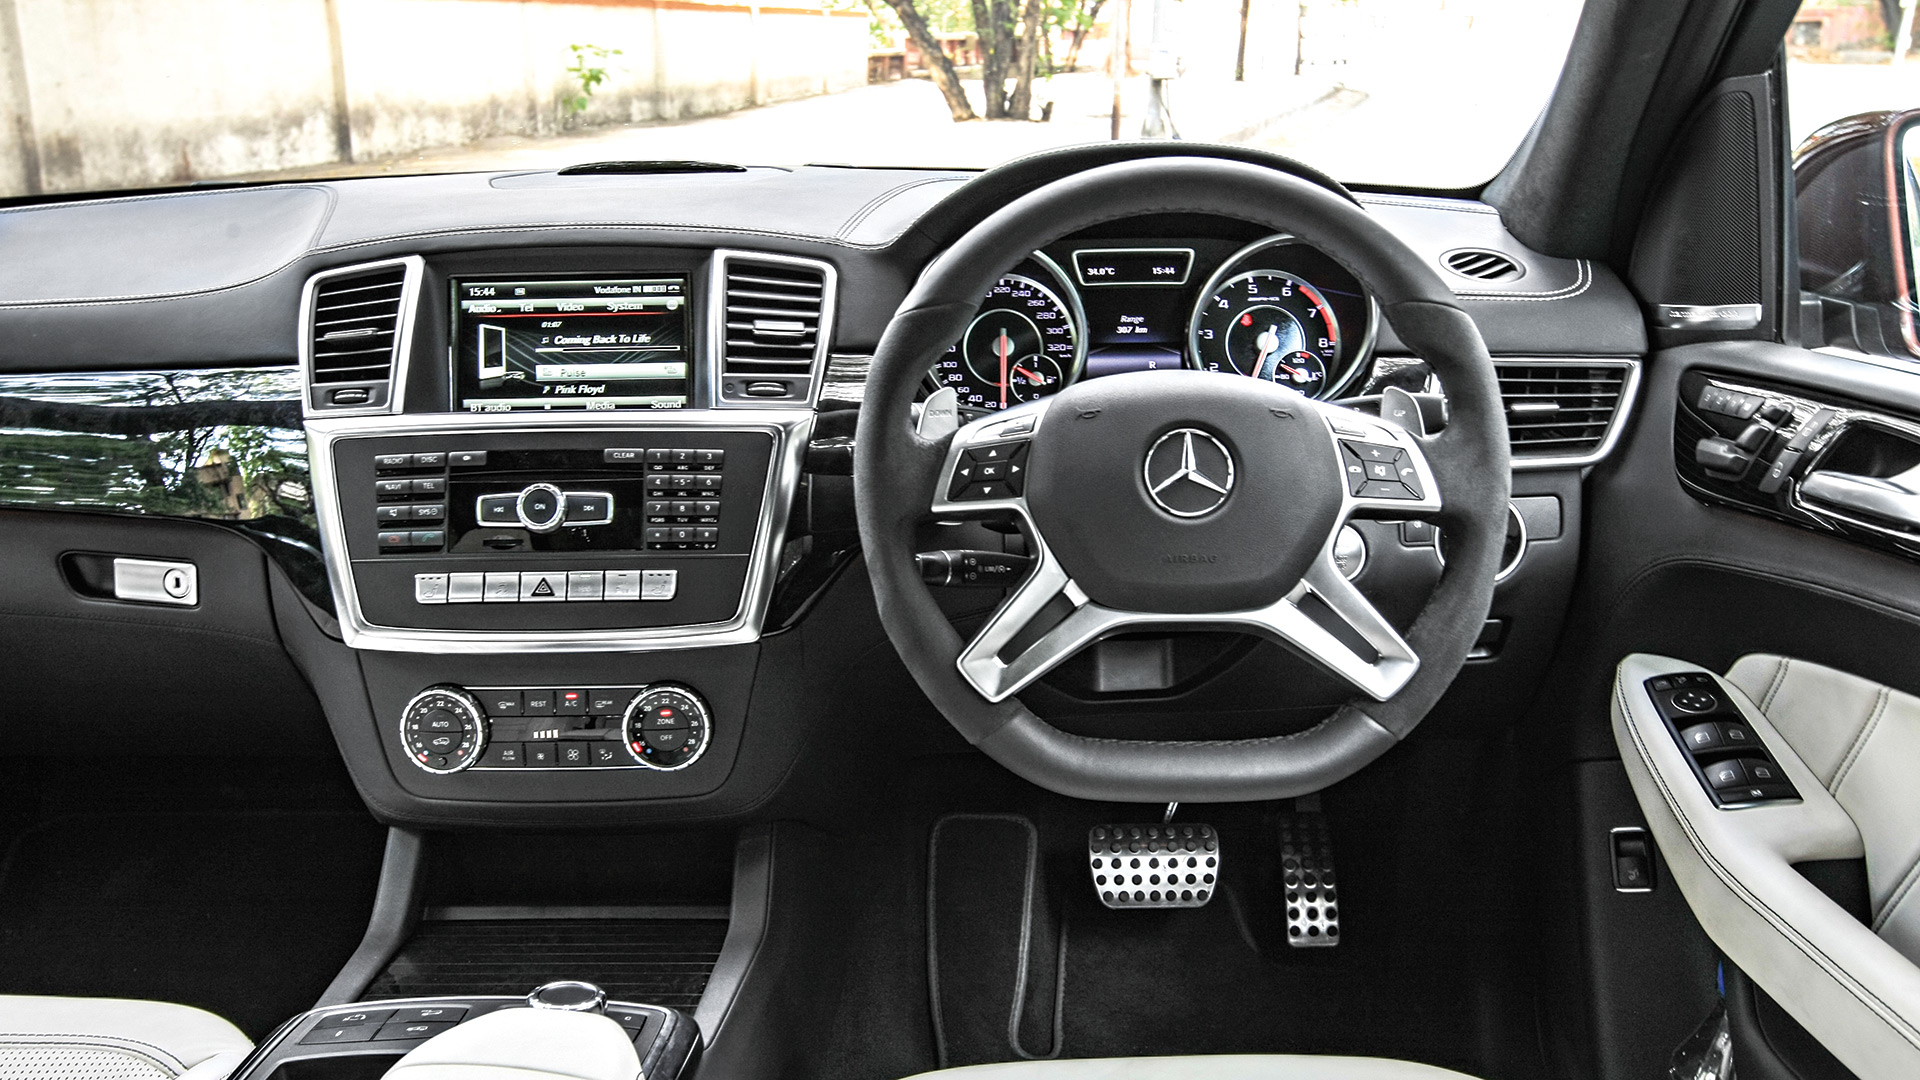 Mercedes Benz Ml Class 2015 Ml 63 Amg Price Mileage Reviews Specification Gallery Overdrive